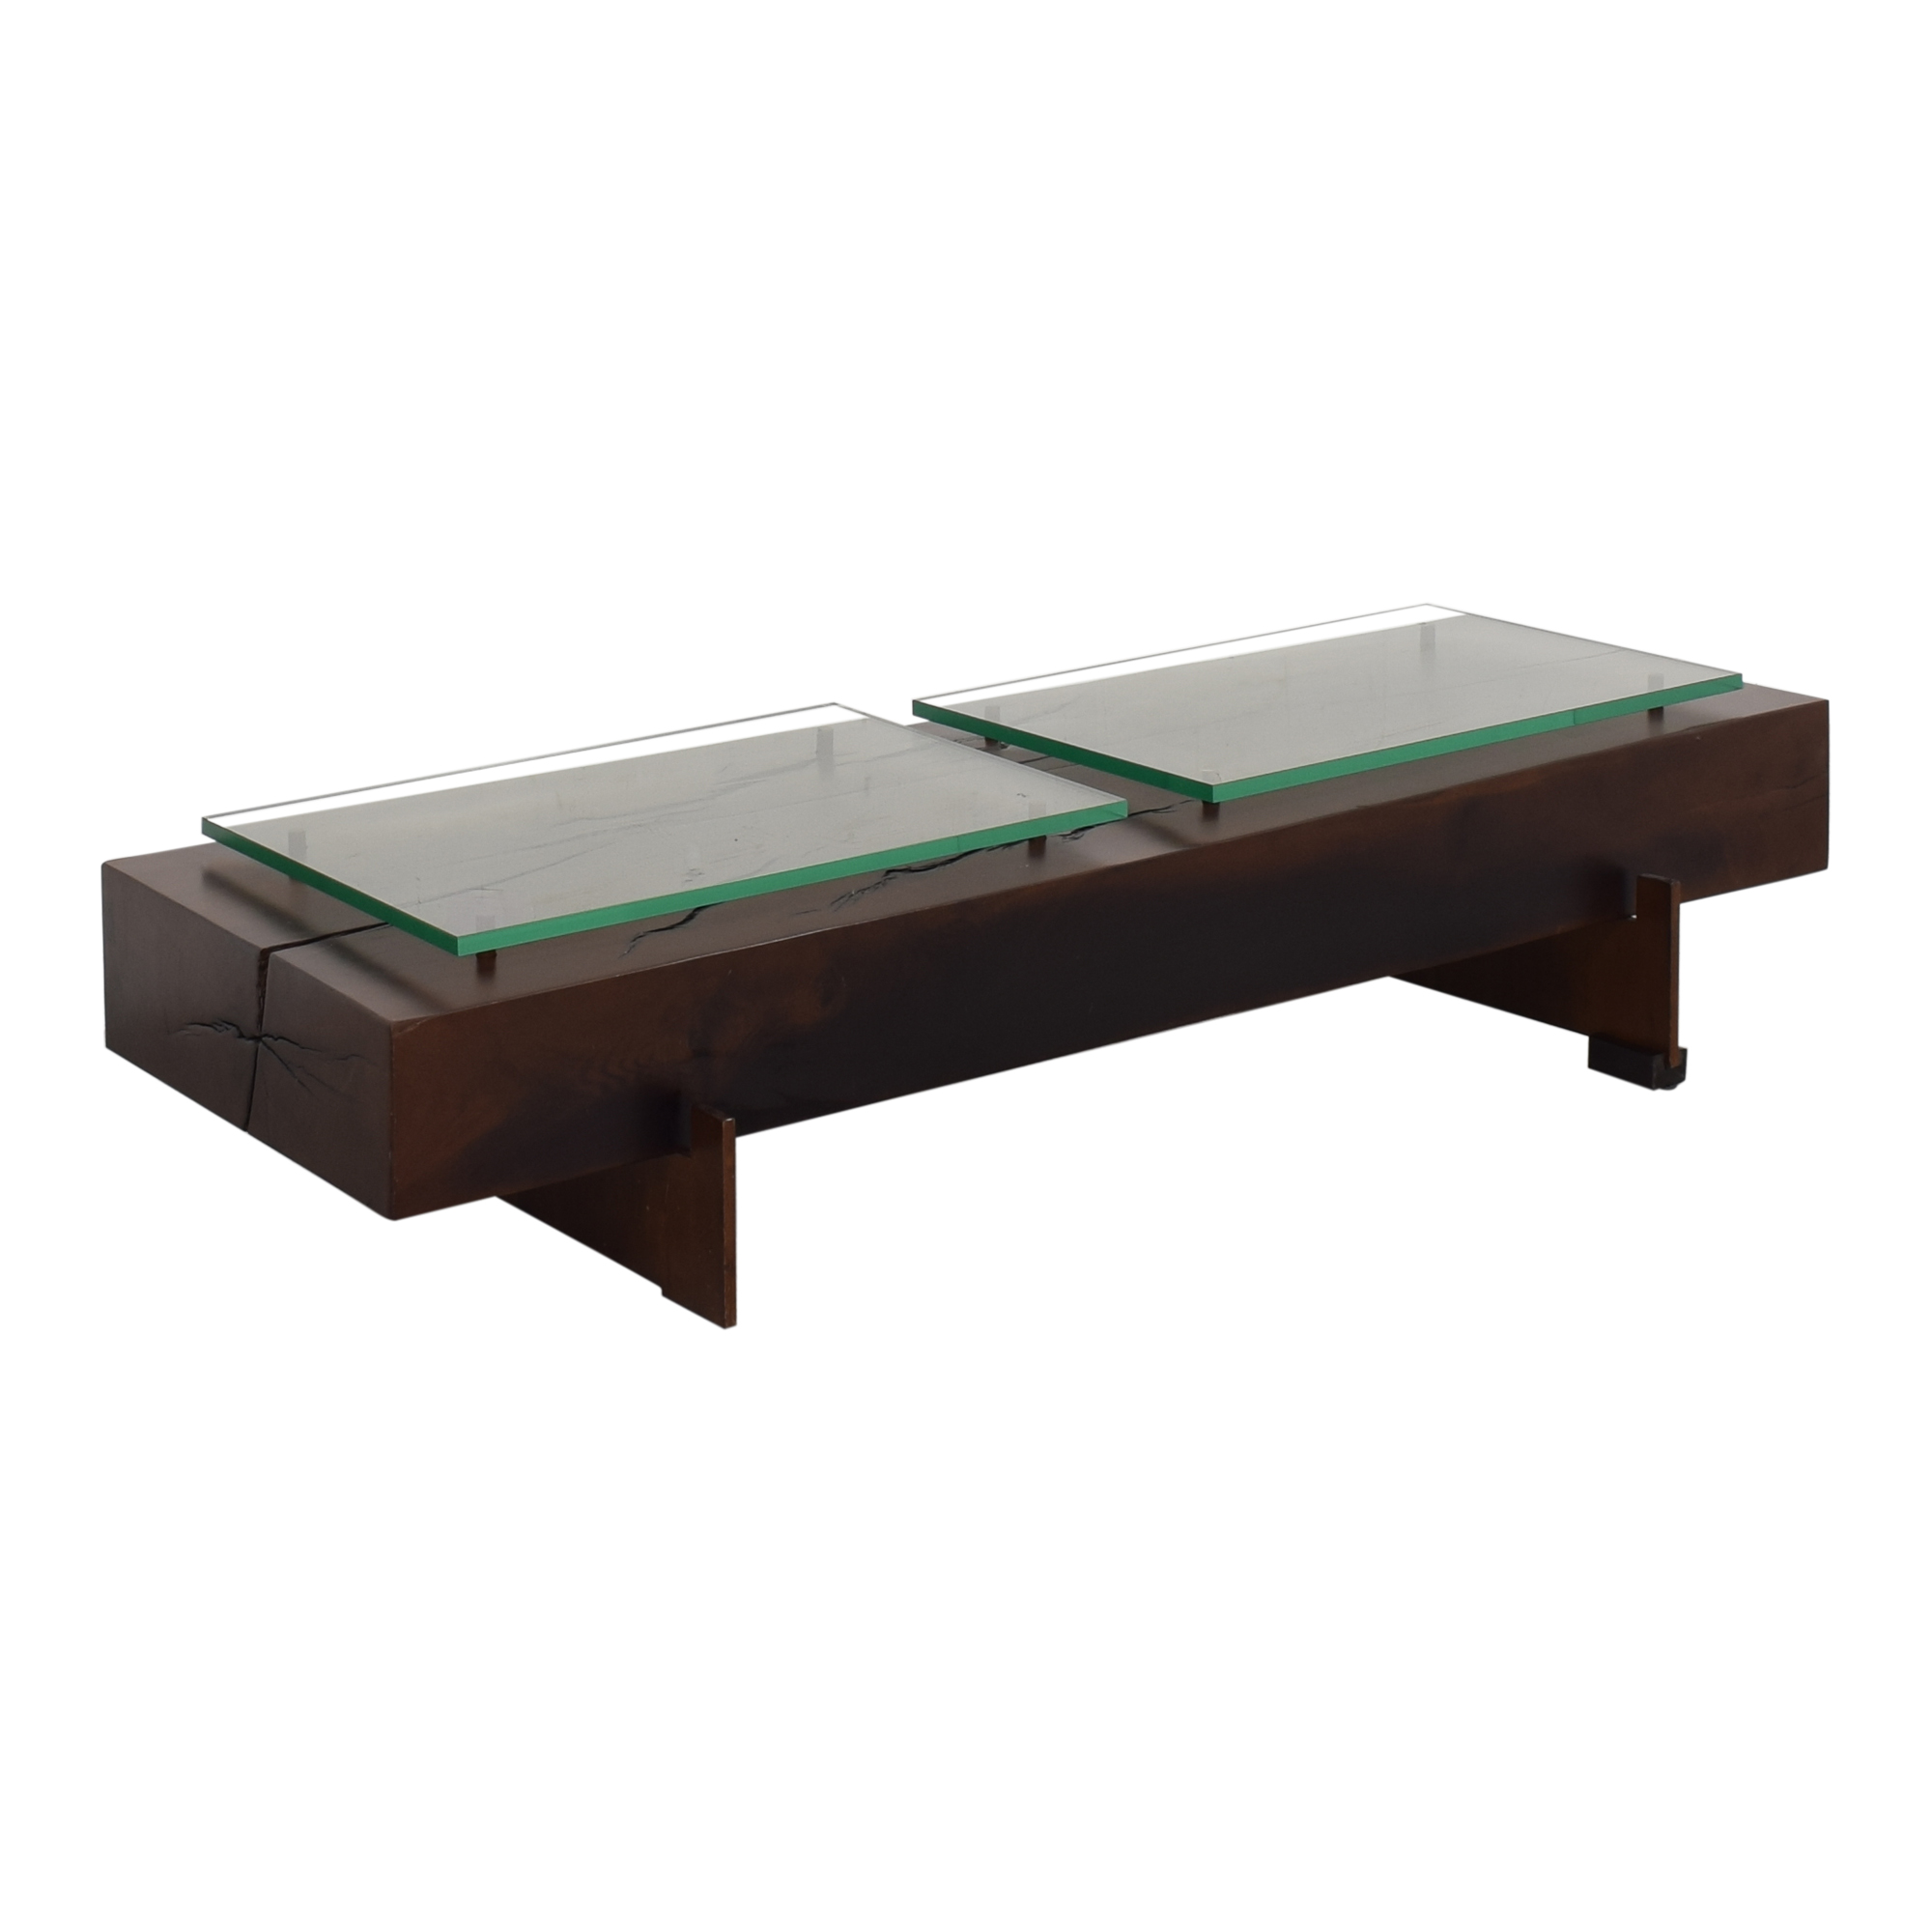 Moura Starr Iguatemi Coffee Table With Glass discount